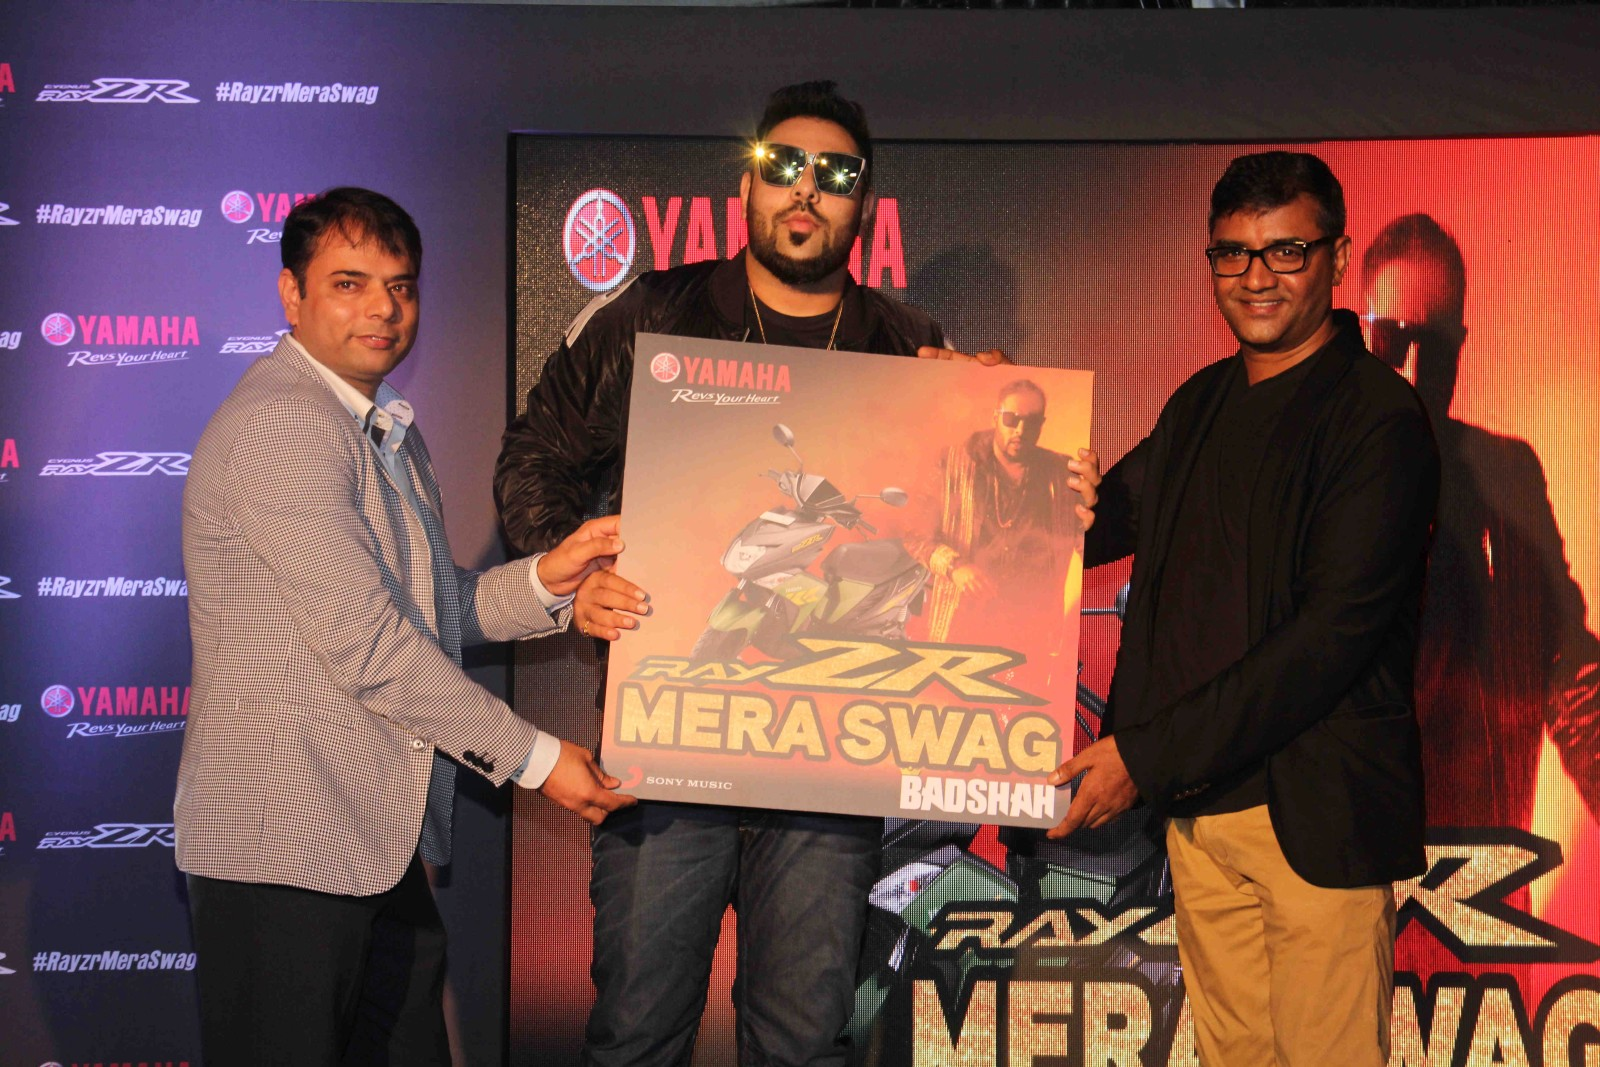 Rapper Badshah to compose a theme song for Yamaha Cygnus Ray-ZR - 1